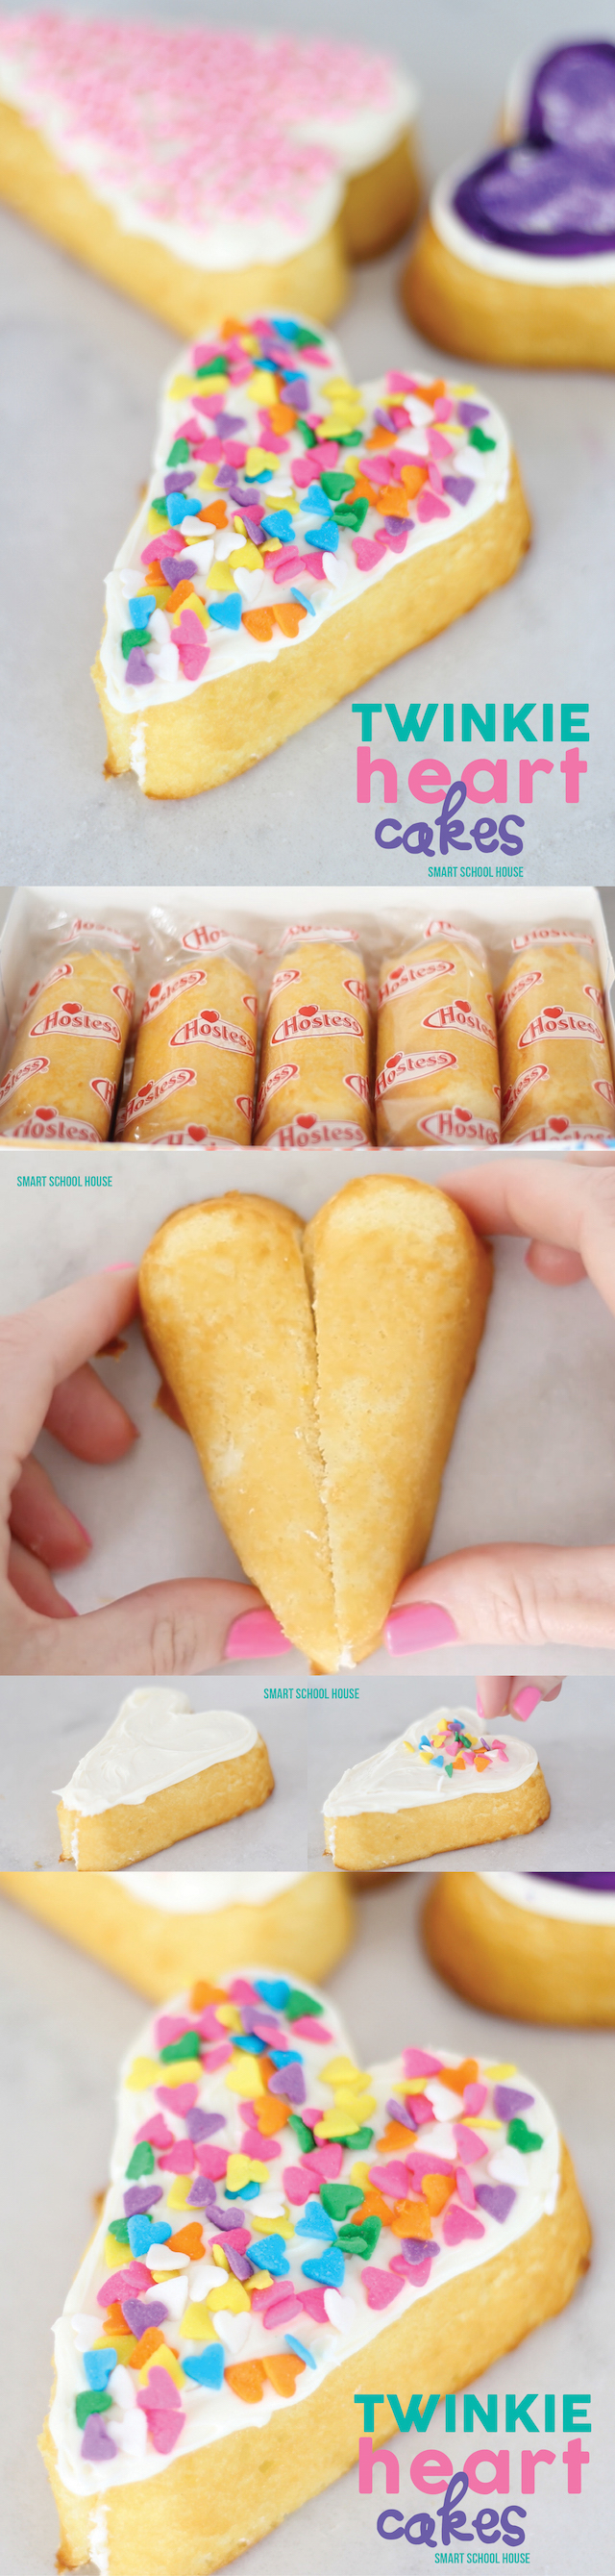 Twinkie Heart Cakes - How to make hearts using Twinkies. LOVE THIS!